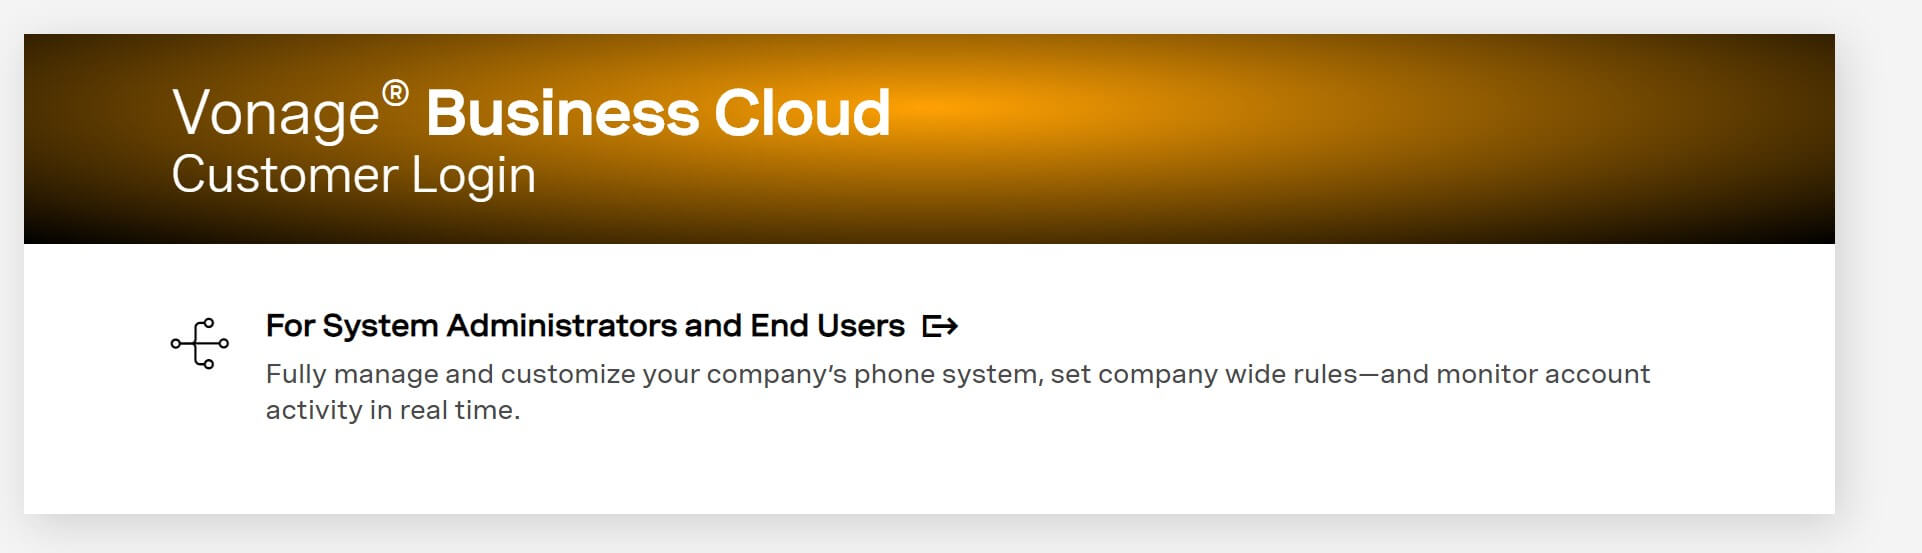 Vonage Business Cloud Customer Login